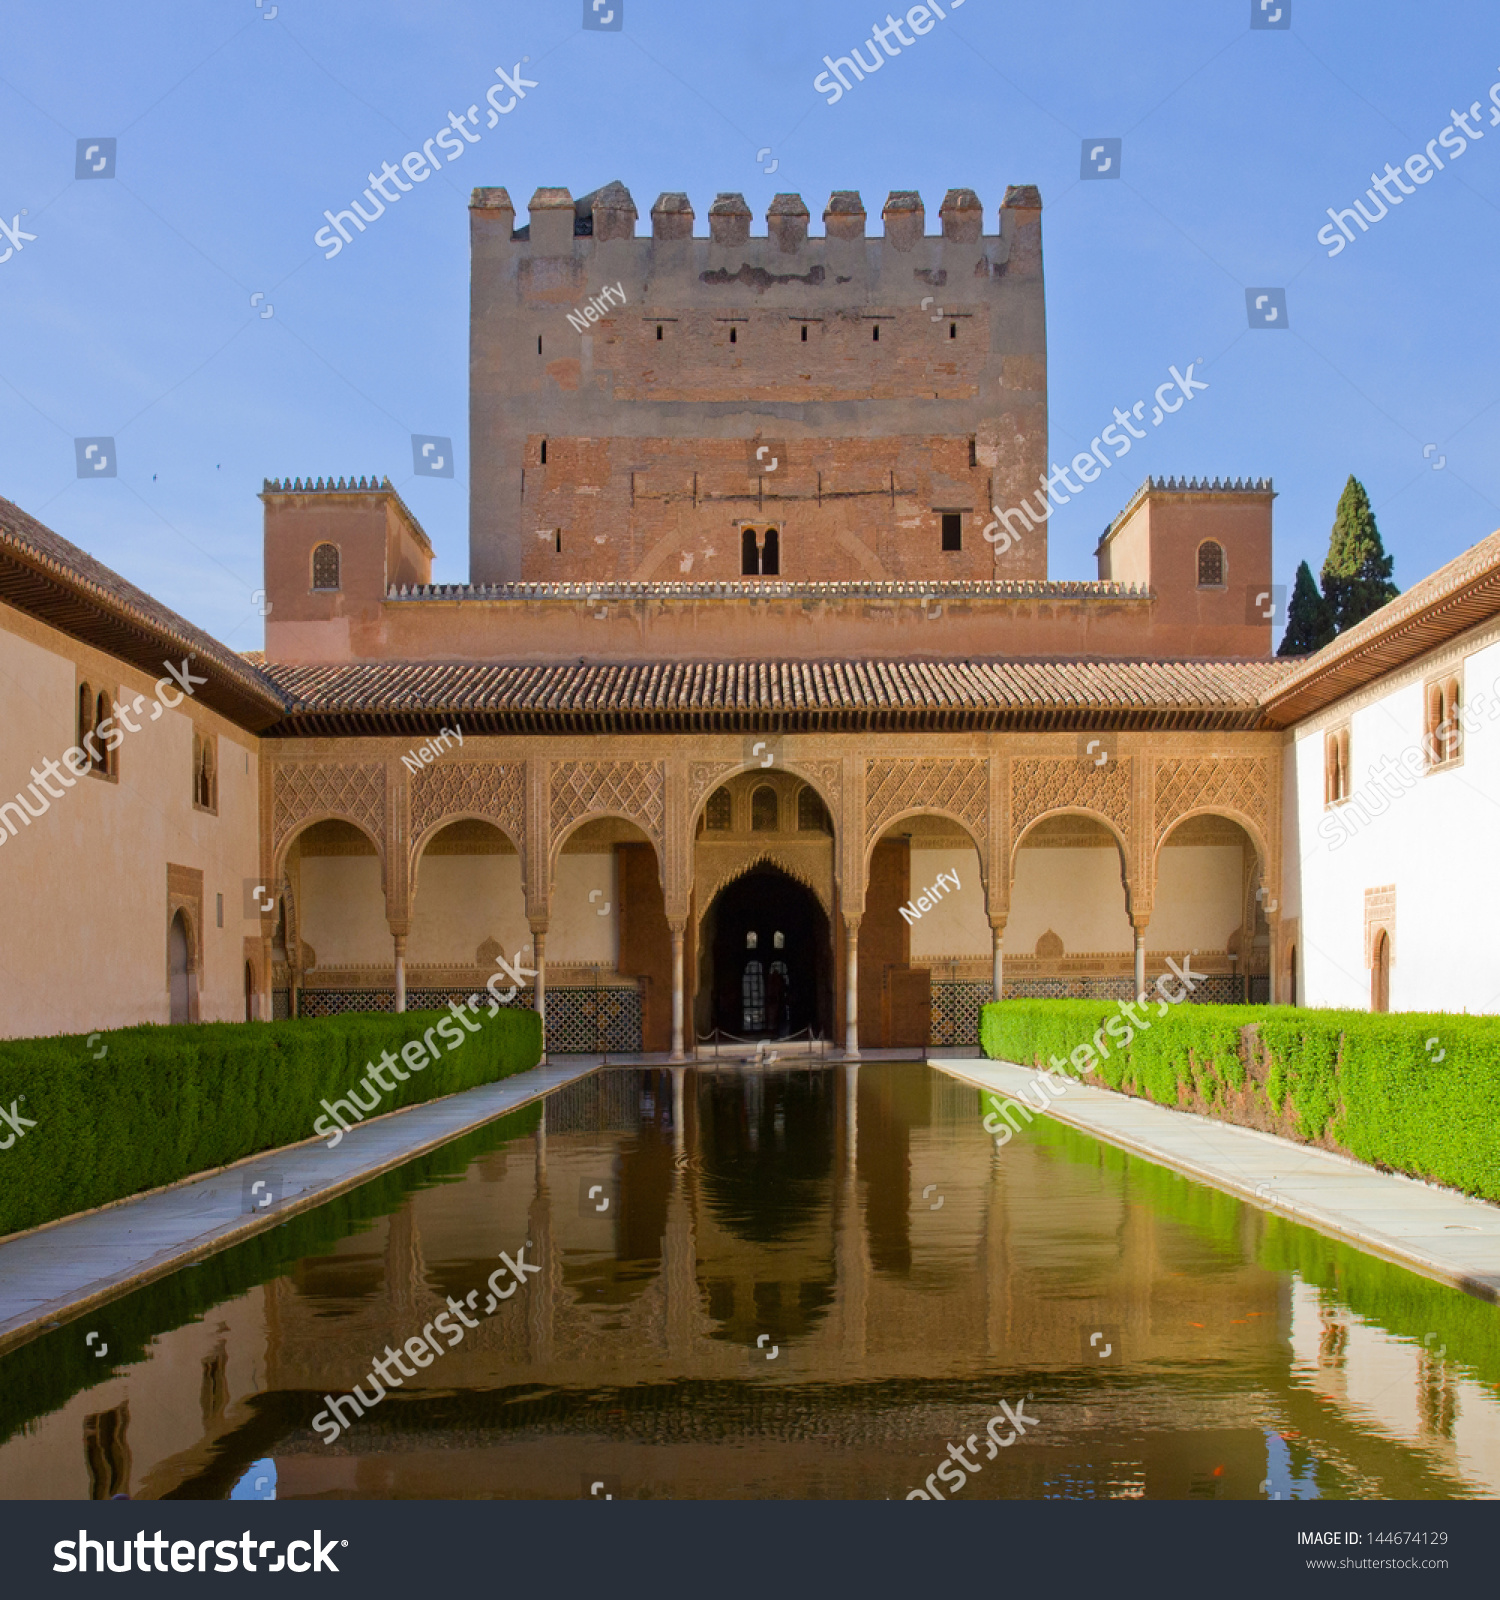 Patio De Los Arrayanes (Court Of The Myrtles) In La Alhambra, Granada, Spain ...